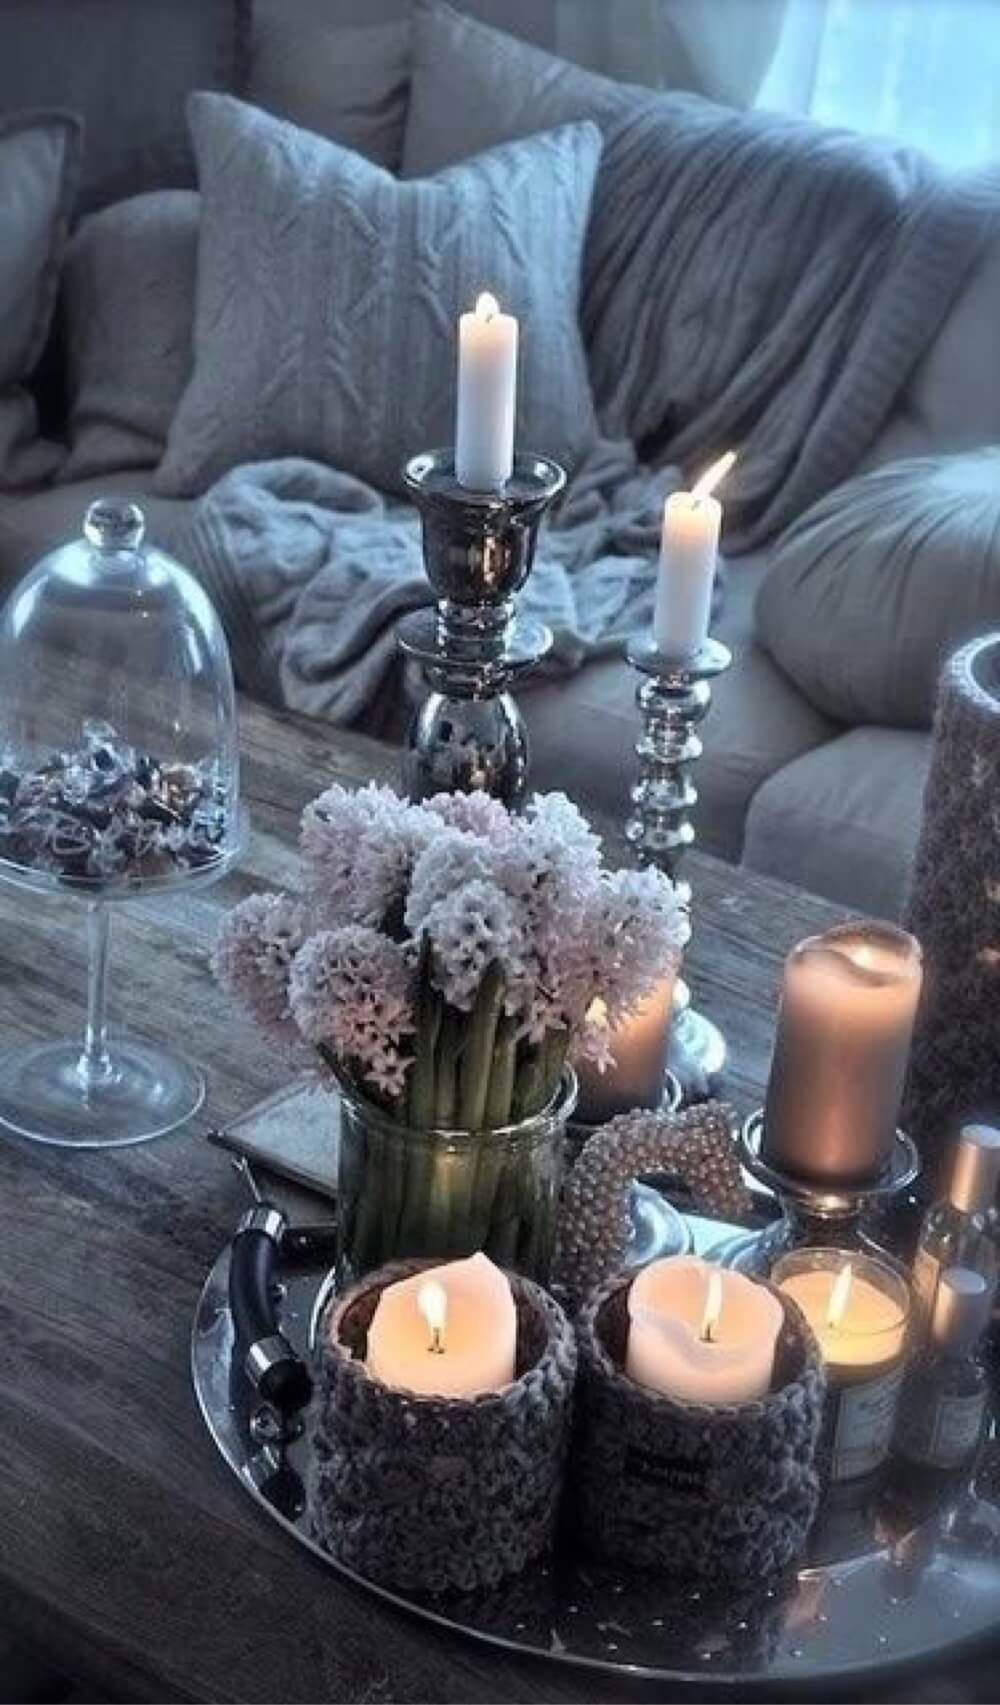 Lively and Functional Rustic Glam Decorations